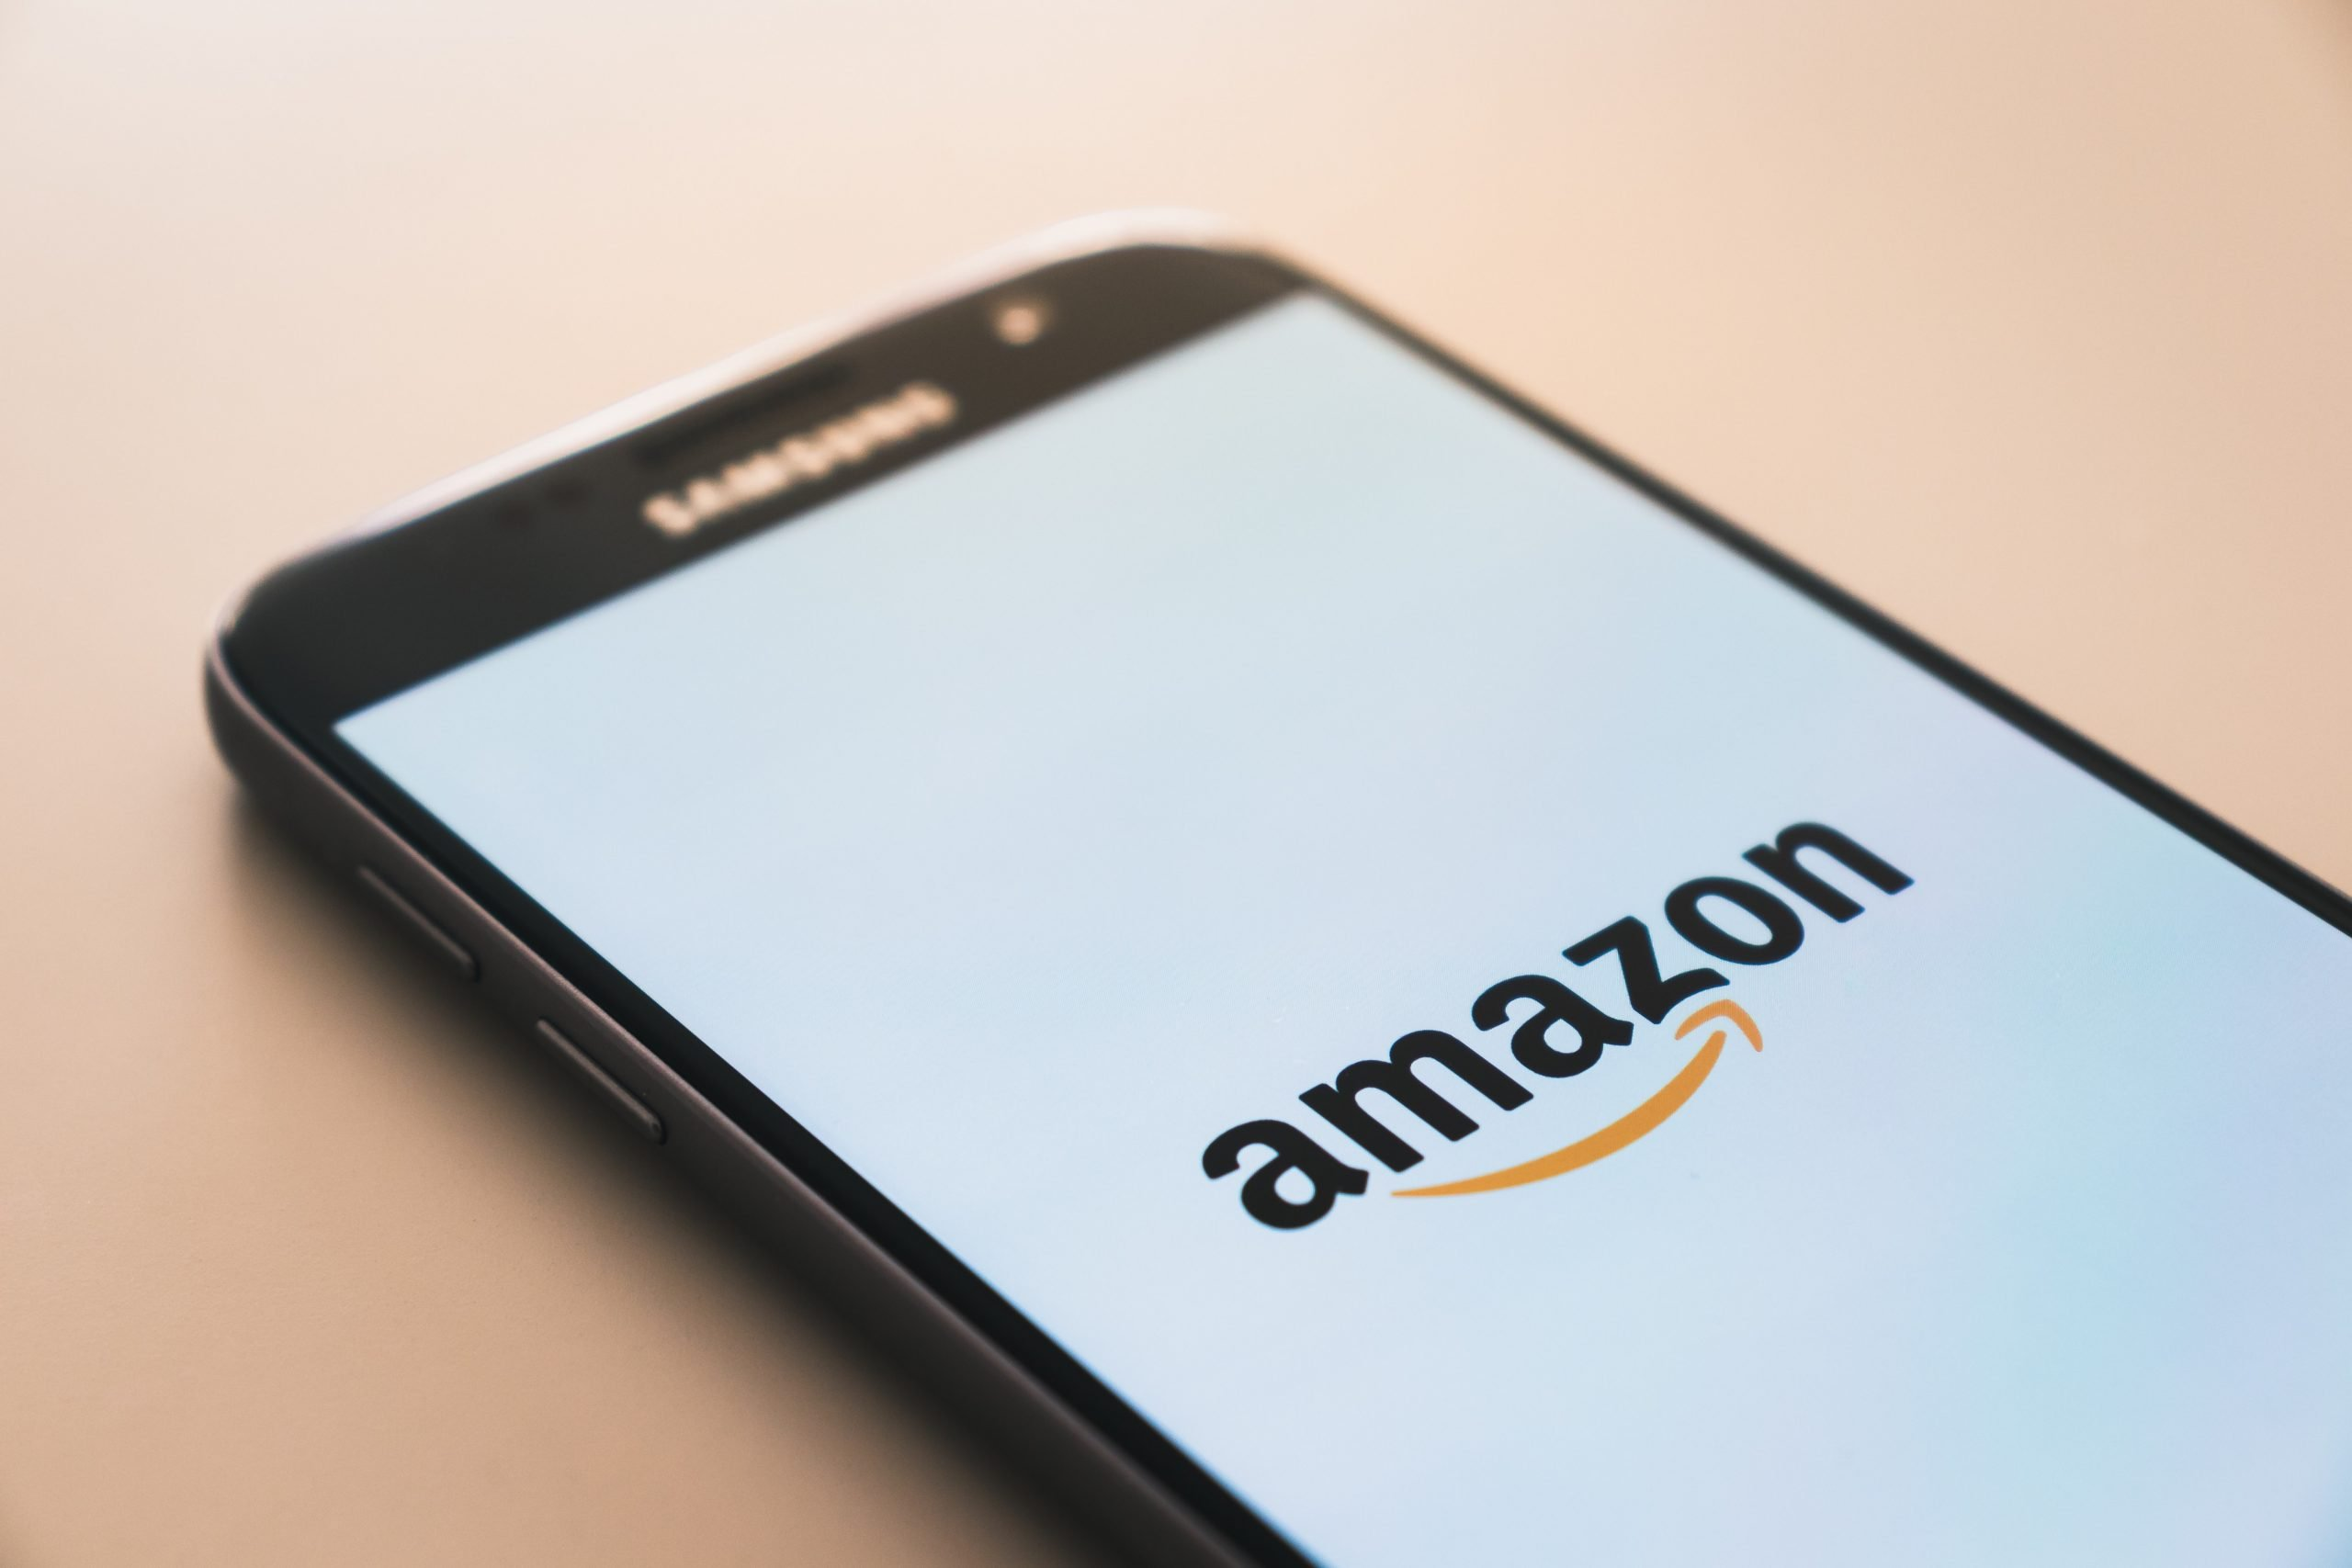 A phone with the amazon logo on it